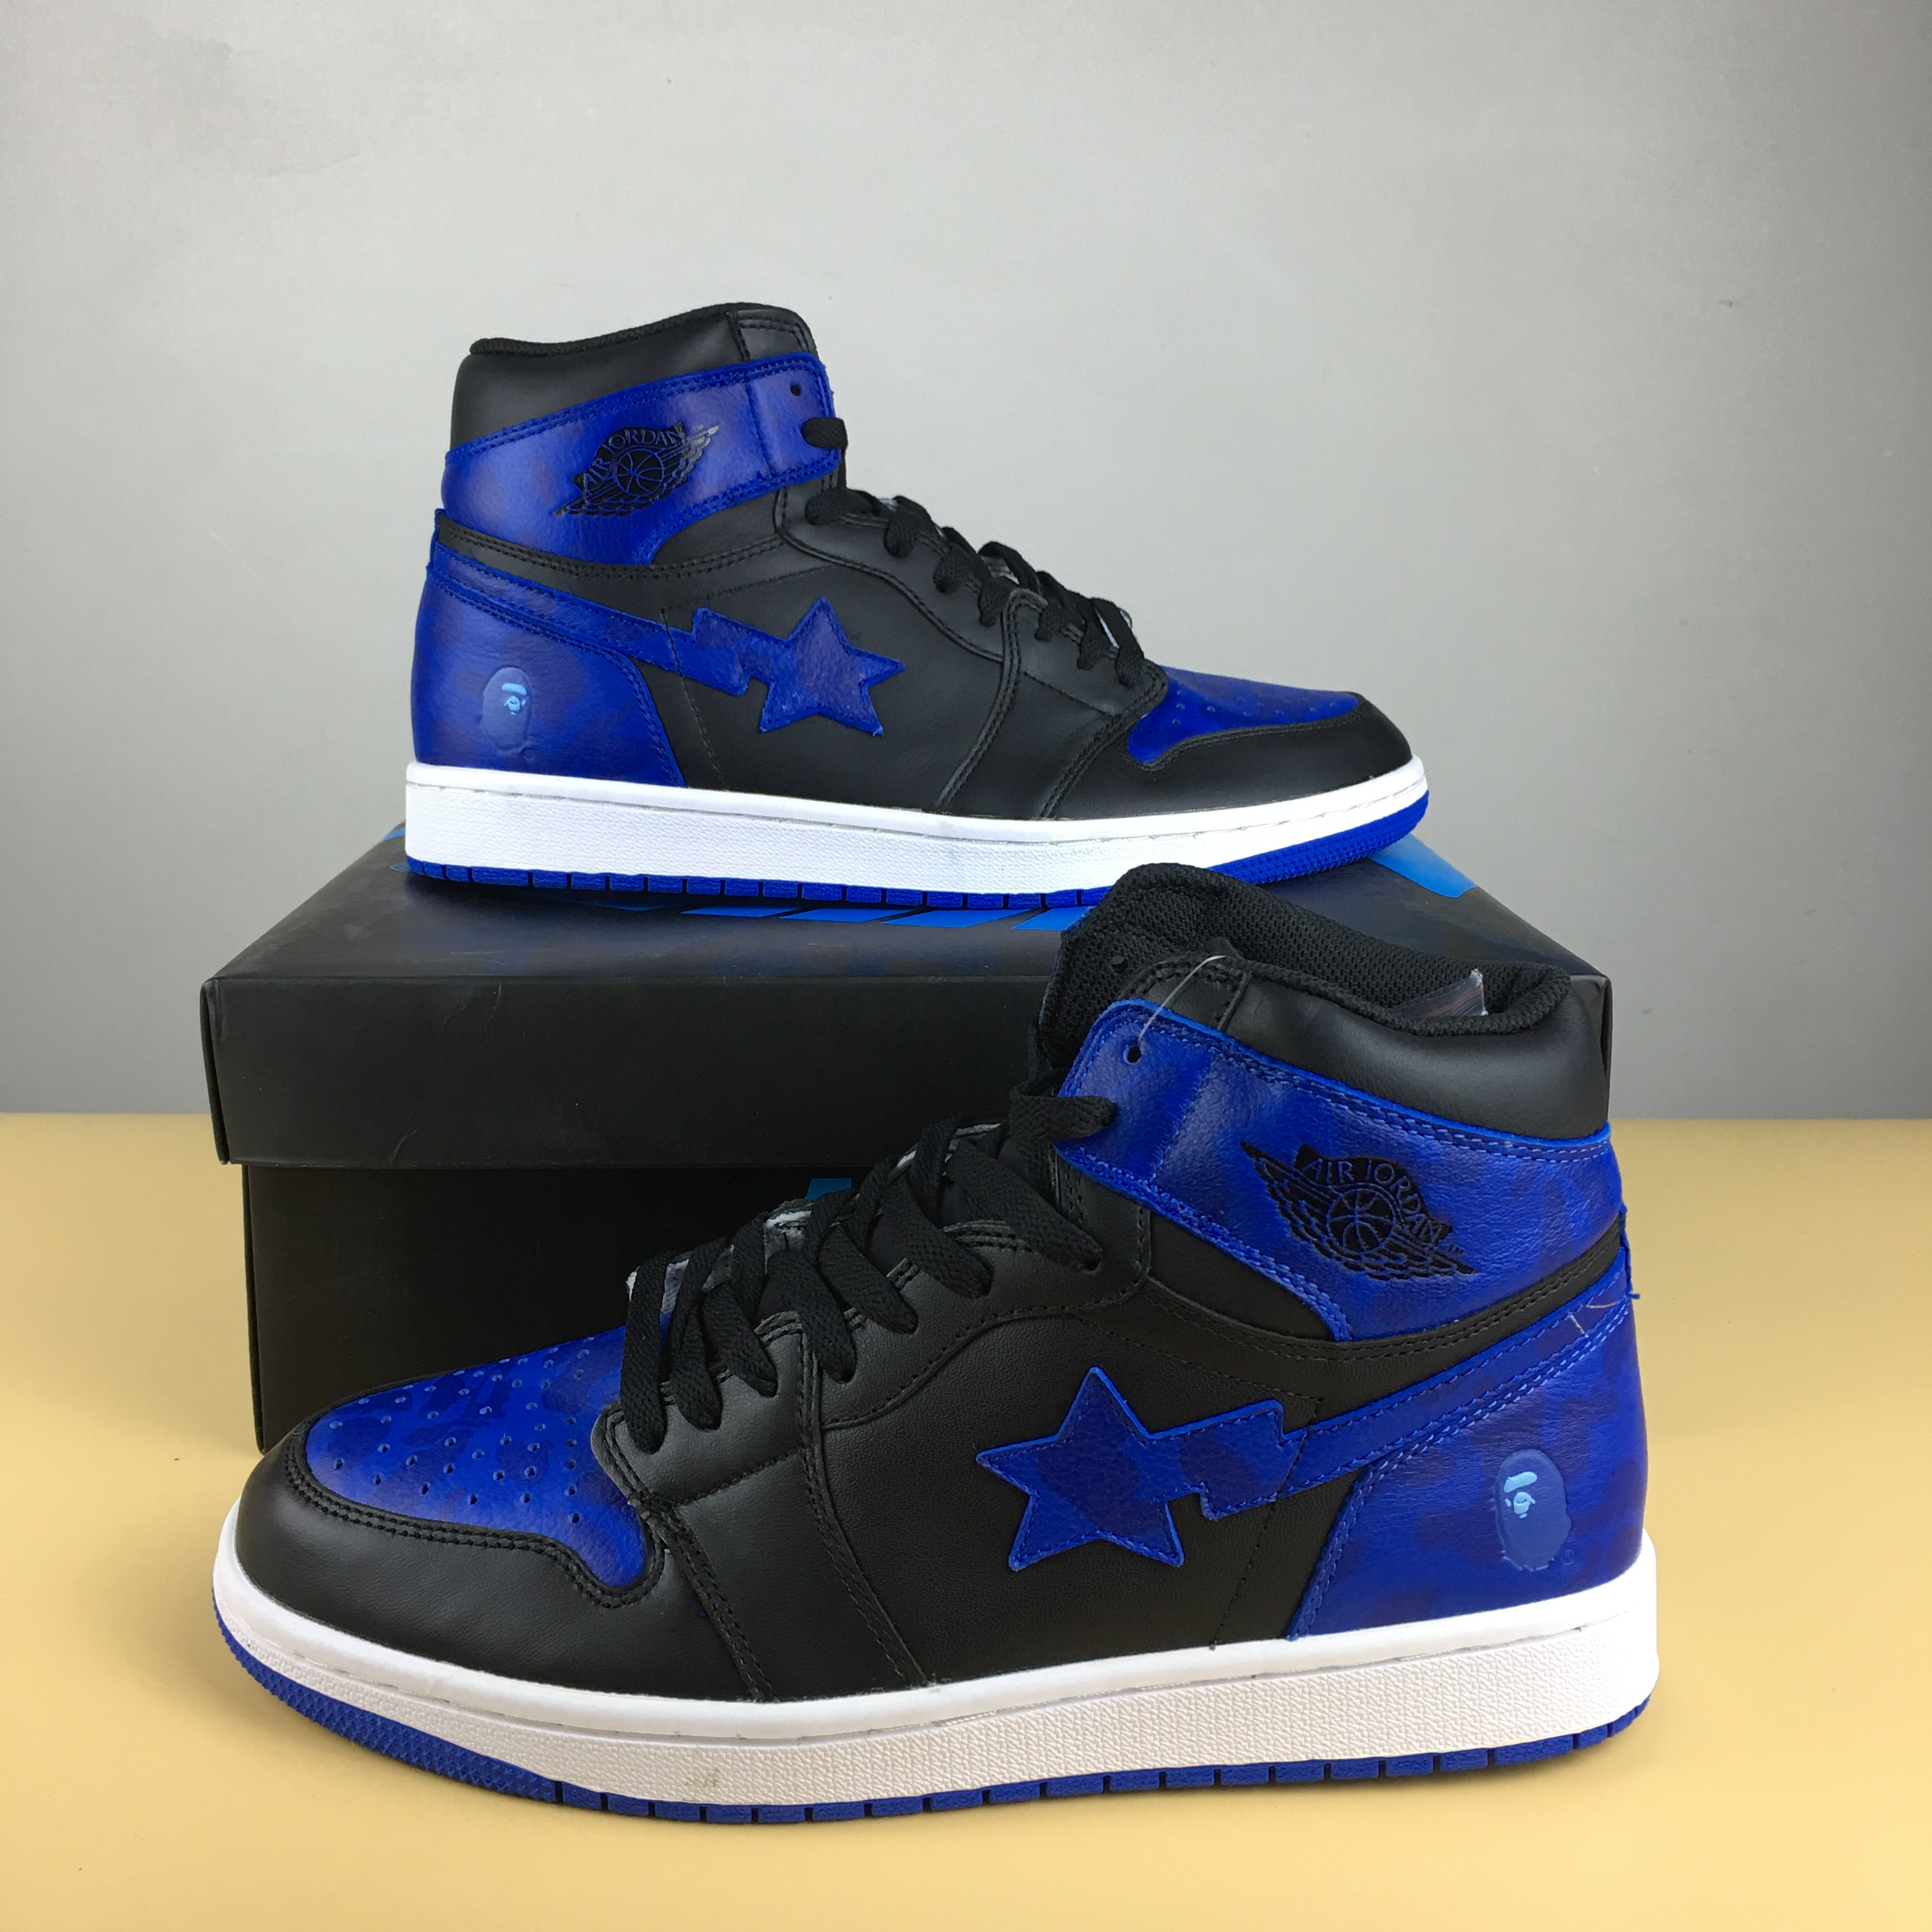 New Men BAPE x Air Jordan 1 Royal